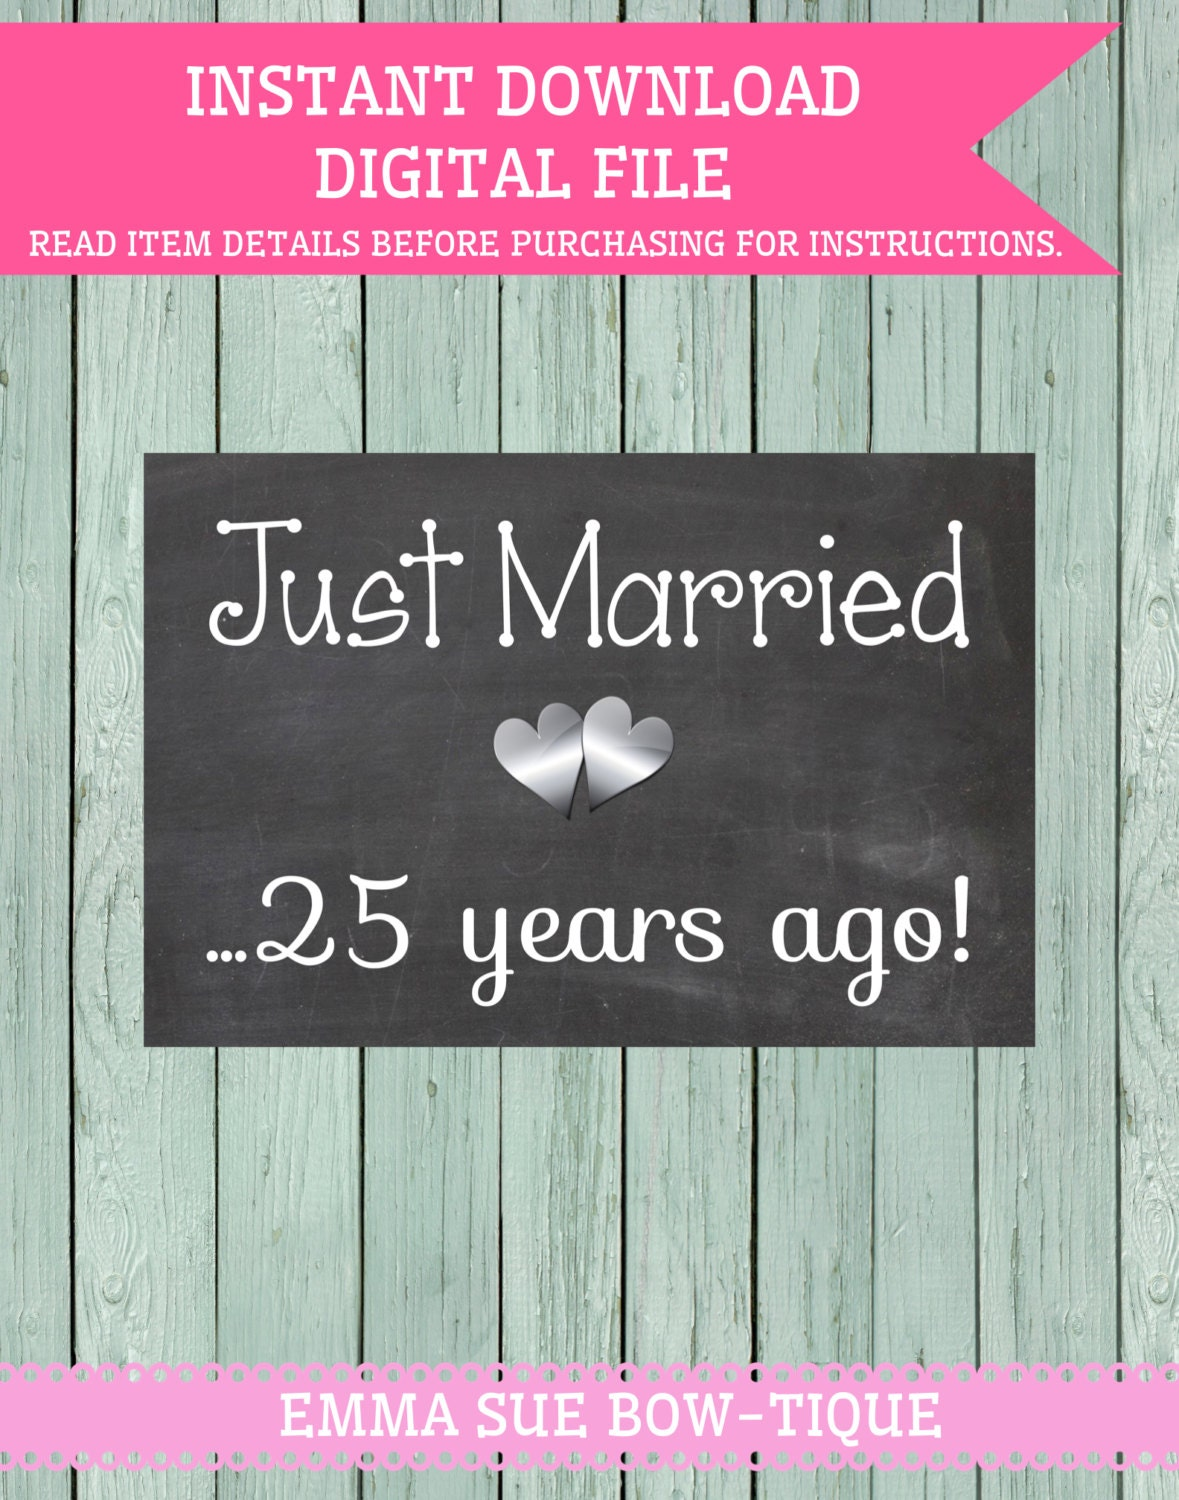 Just Married 25 Years Ago Chalkboard Digital File Vow